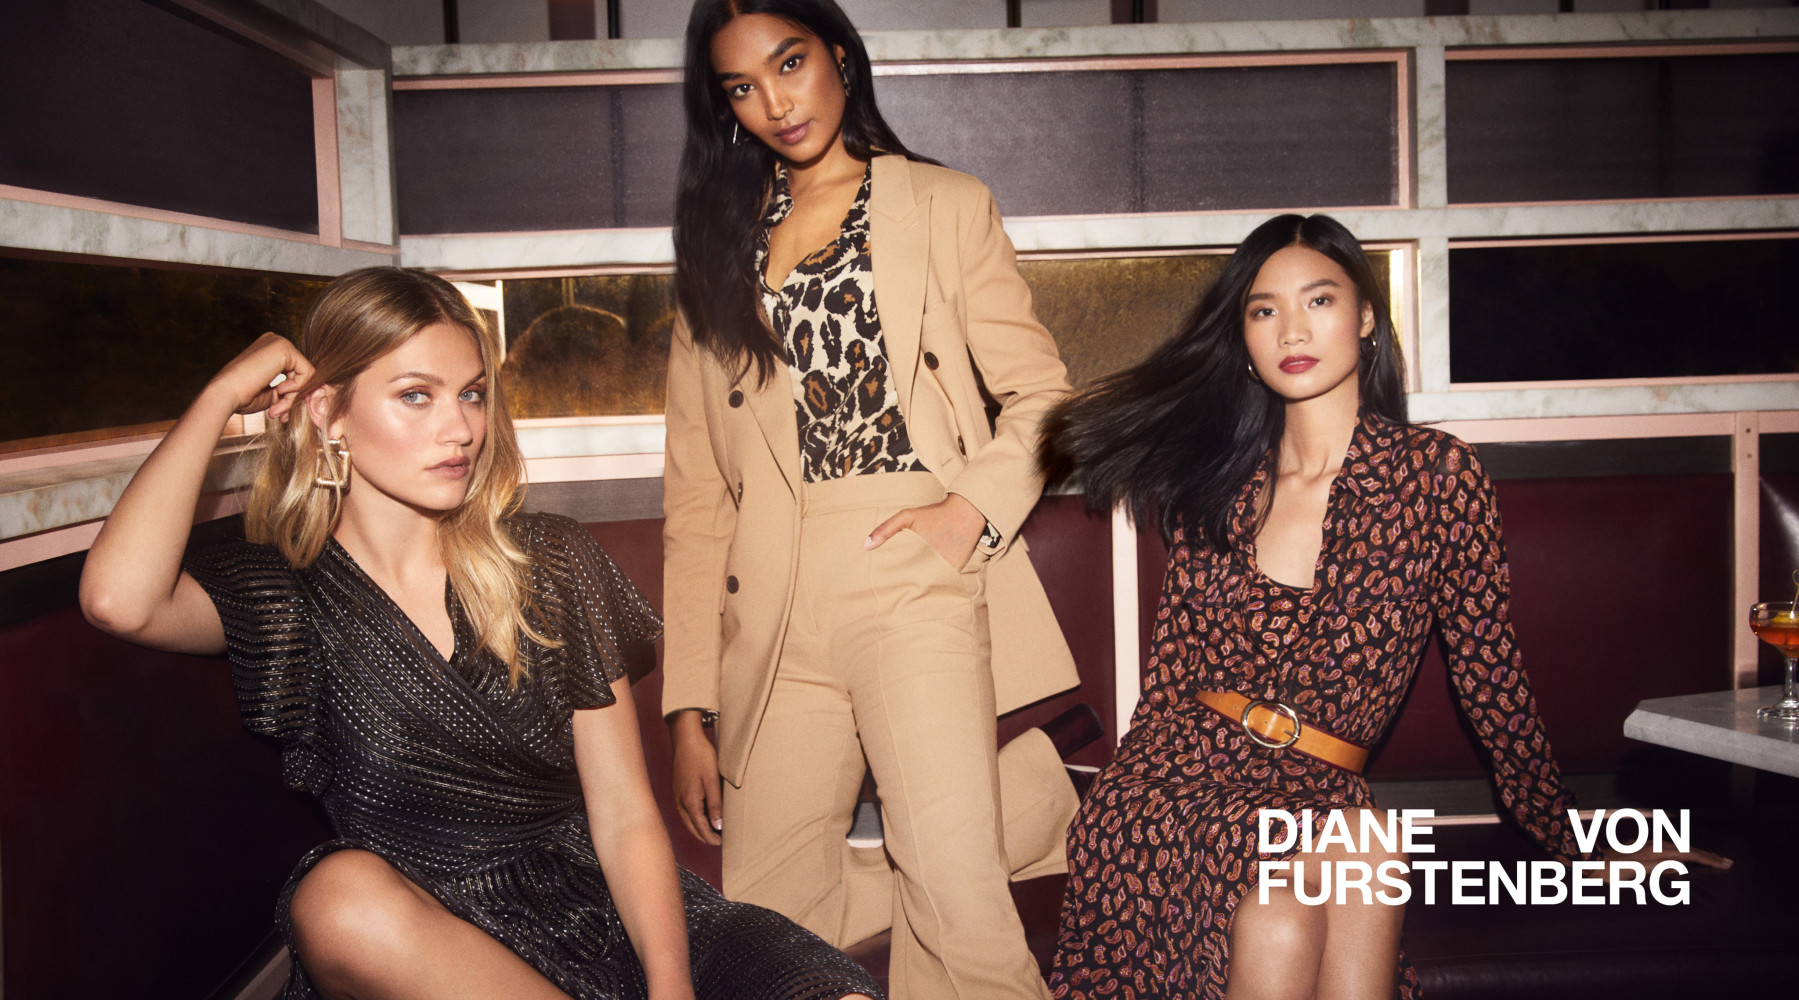 SPOTTED: Shivani for DVF